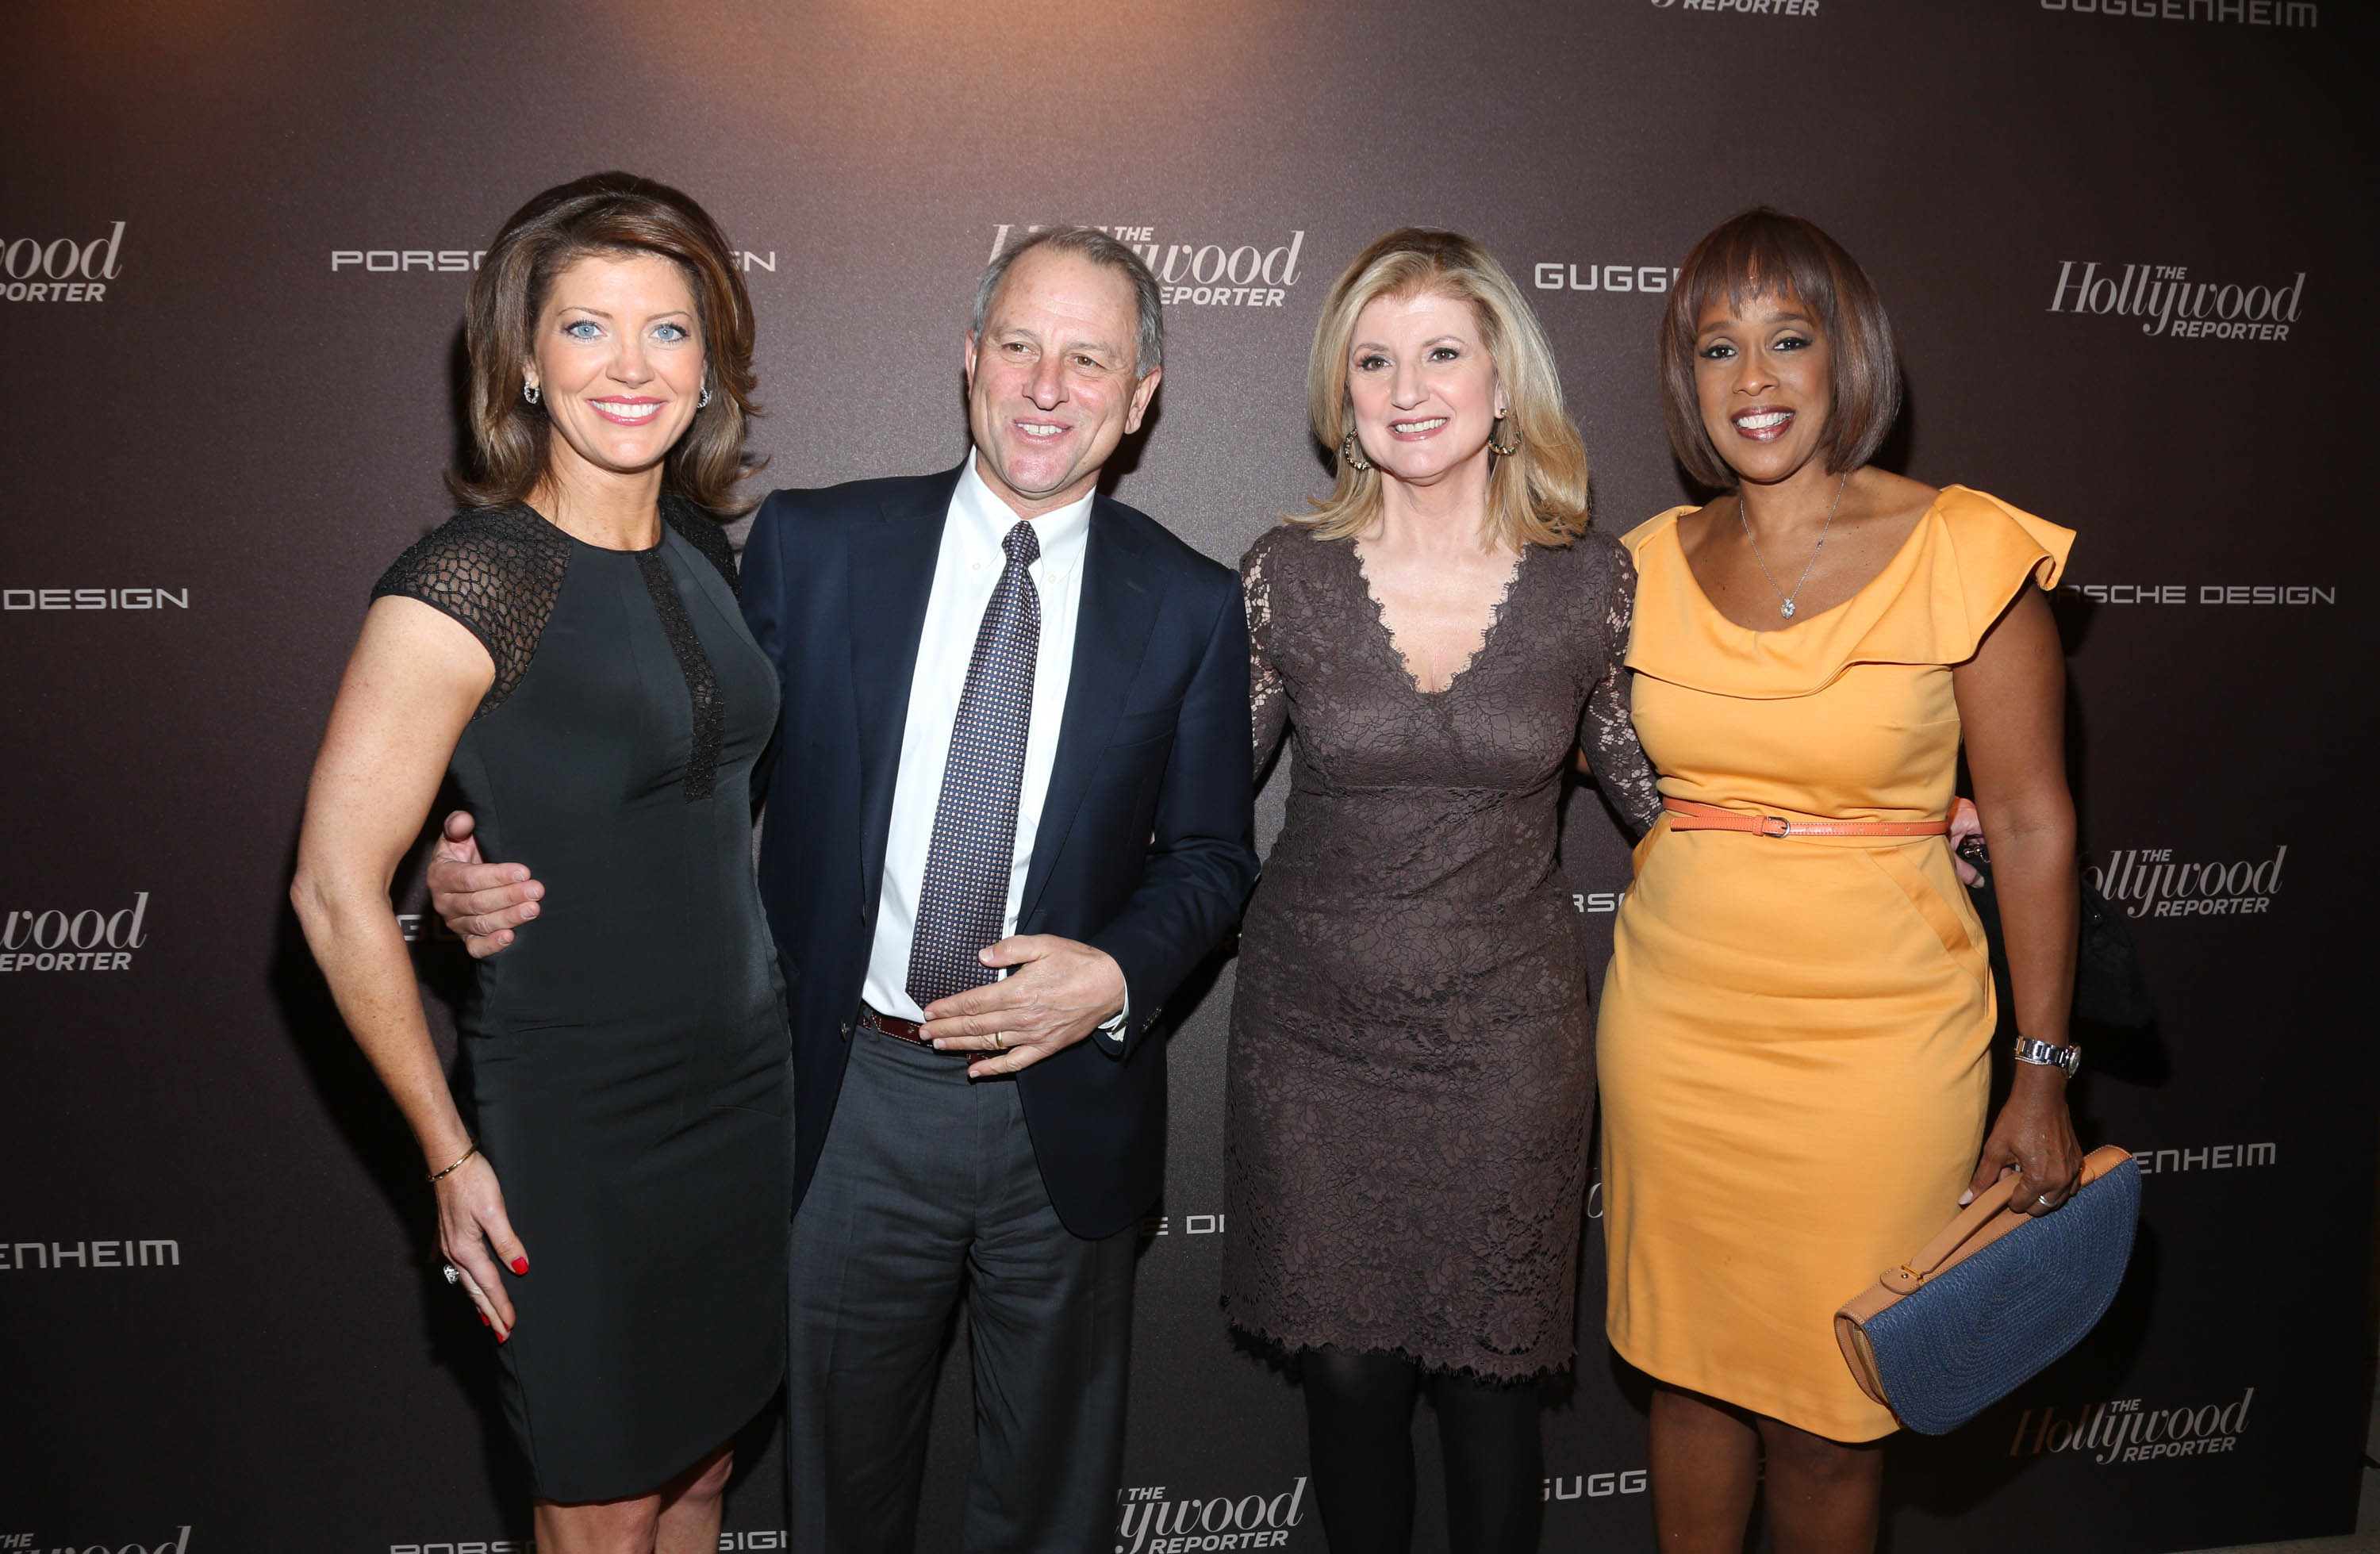 NEW YORK, NY - APRIL 16: Norah O'Donnell, Jeff Fager, Arianna Huffington and Gayle King attend The Hollywood Reporter 35 Most Powerful People In Media Celebration at The Four Seasons Restaurant on April 16, 2014 in New York City. (Photo by Rob Kim/Getty Images)